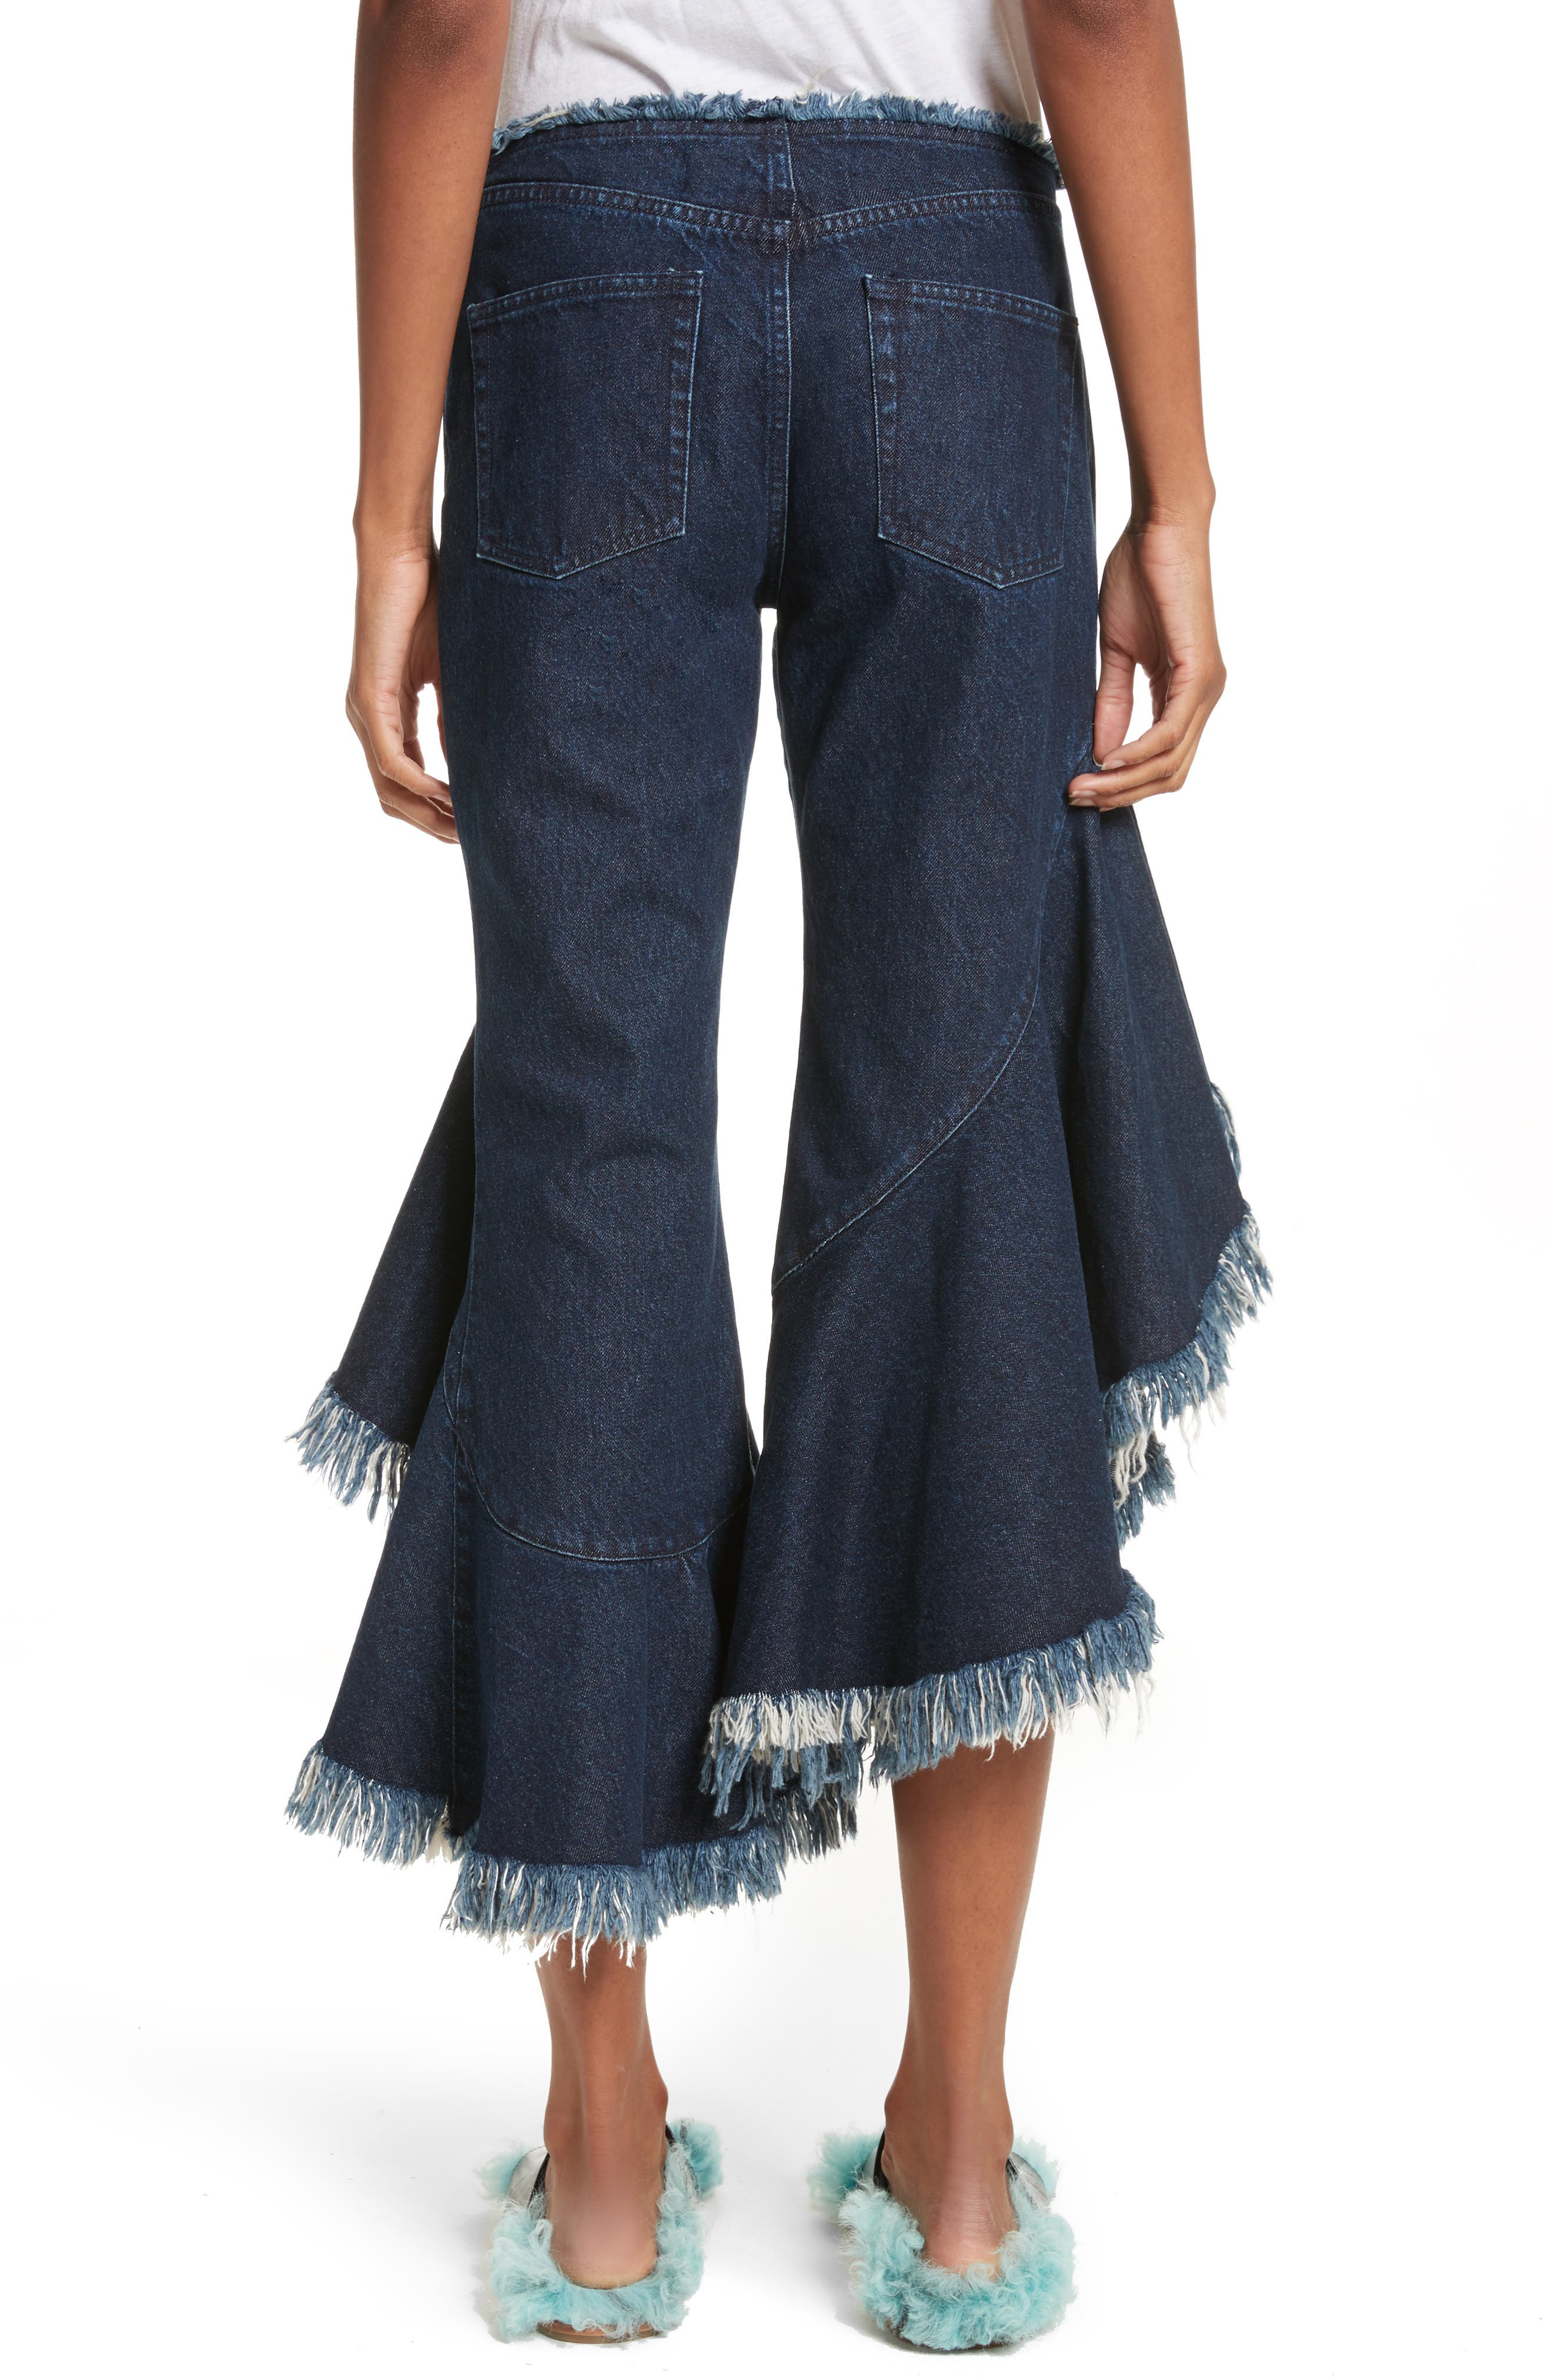 Marques'Almeida Frill Flare Crop Jeans,                             Alternate thumbnail 2, color,                             400